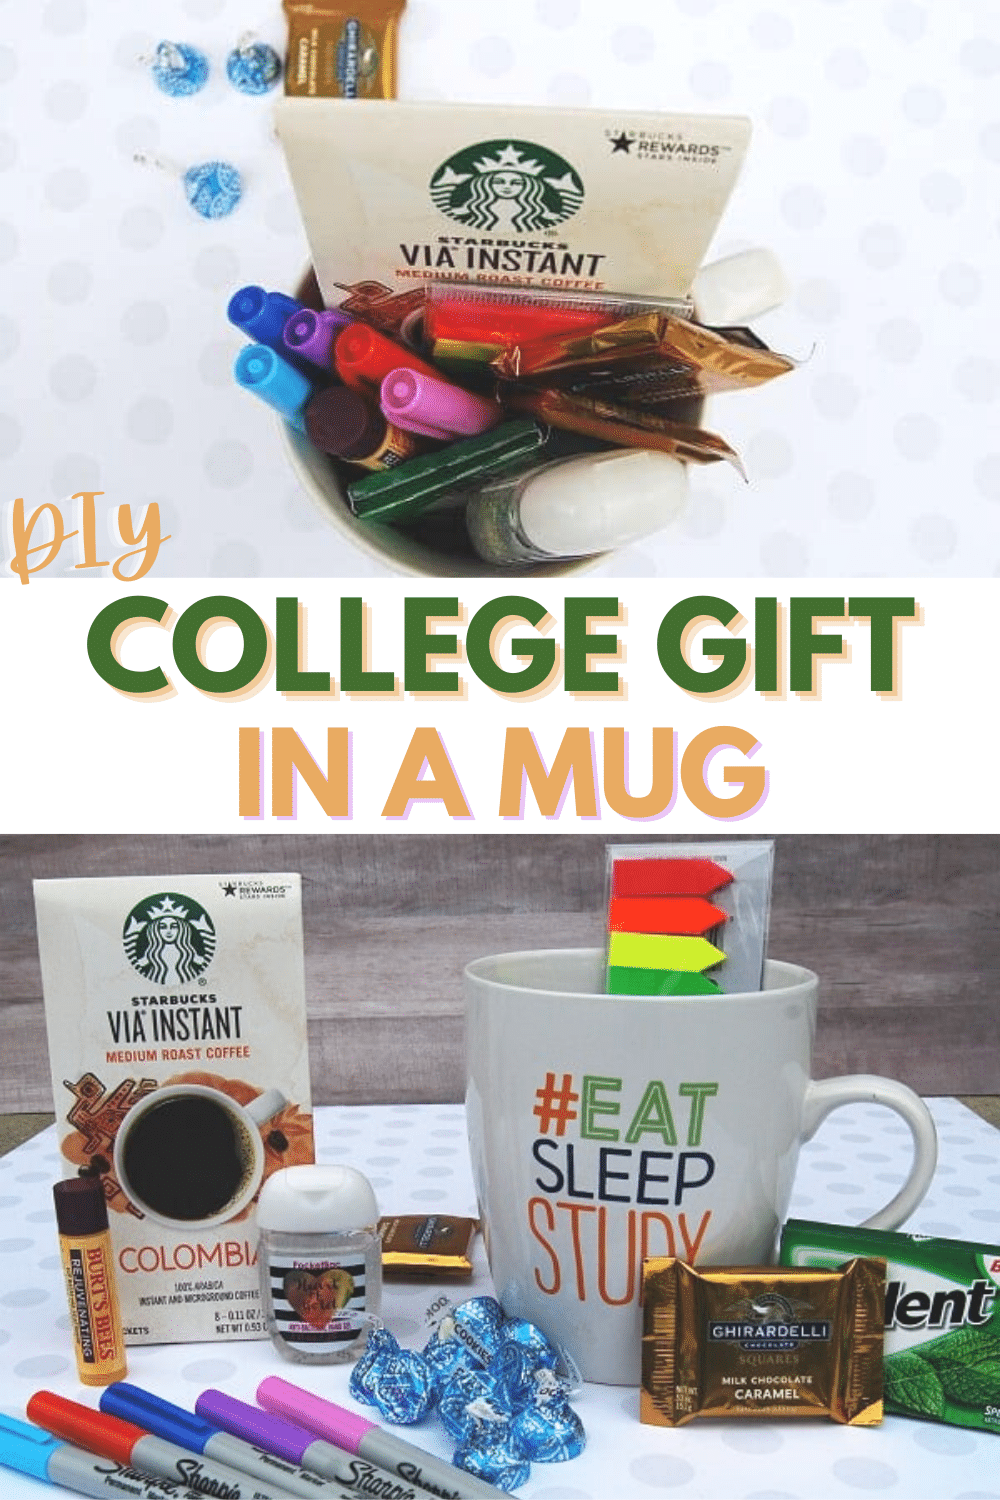 This college gift in a mug is a fun and easy gift idea for any college student. Perfect for encouragement during finals week or any time as a simple treat. #college #collegegift #giftidea #collegestudent via @wondermomwannab